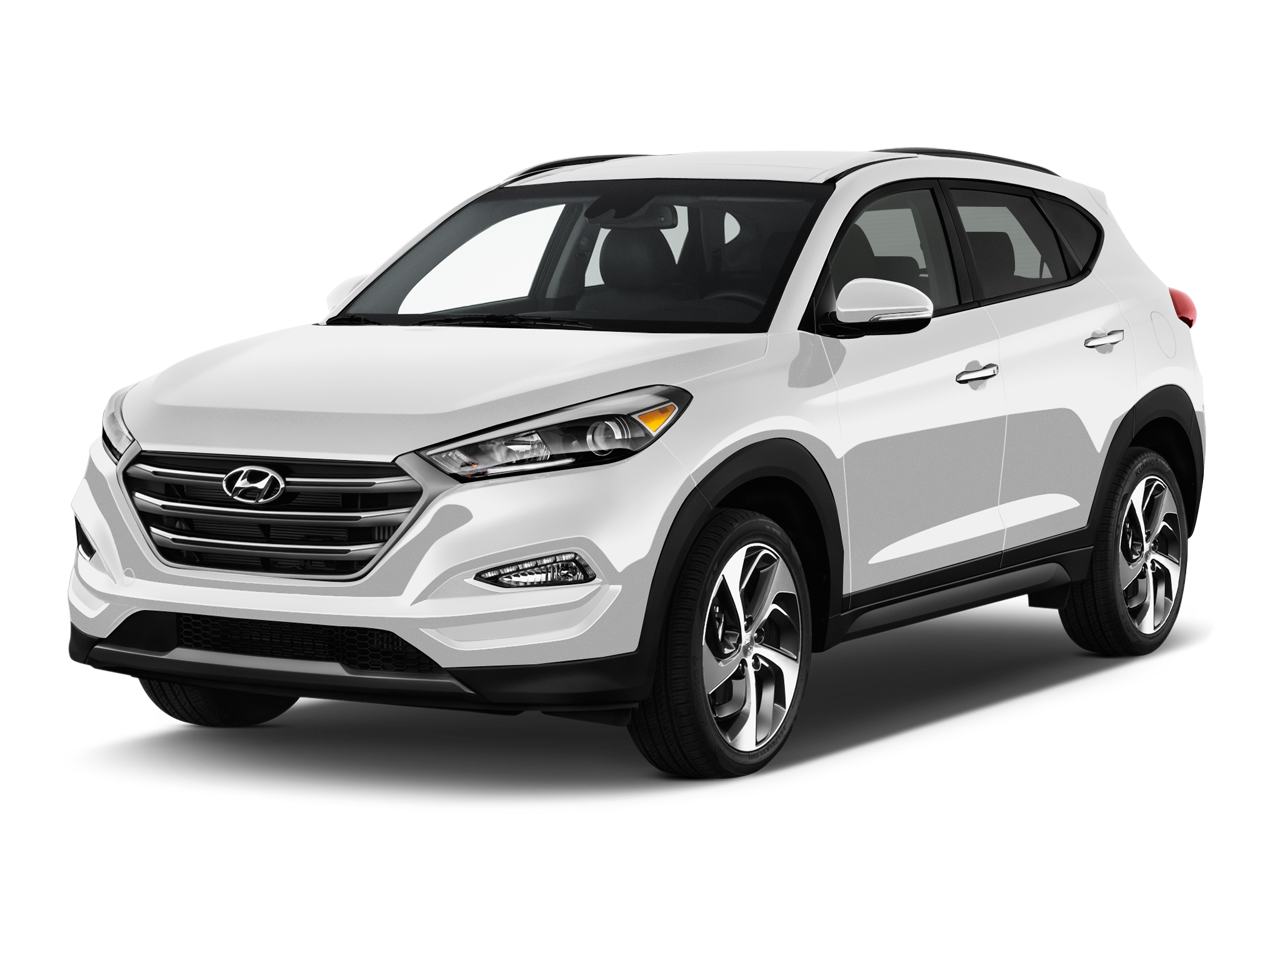 new 2017 hyundai tucson sport near fayetteville nc lee hyundai. Black Bedroom Furniture Sets. Home Design Ideas